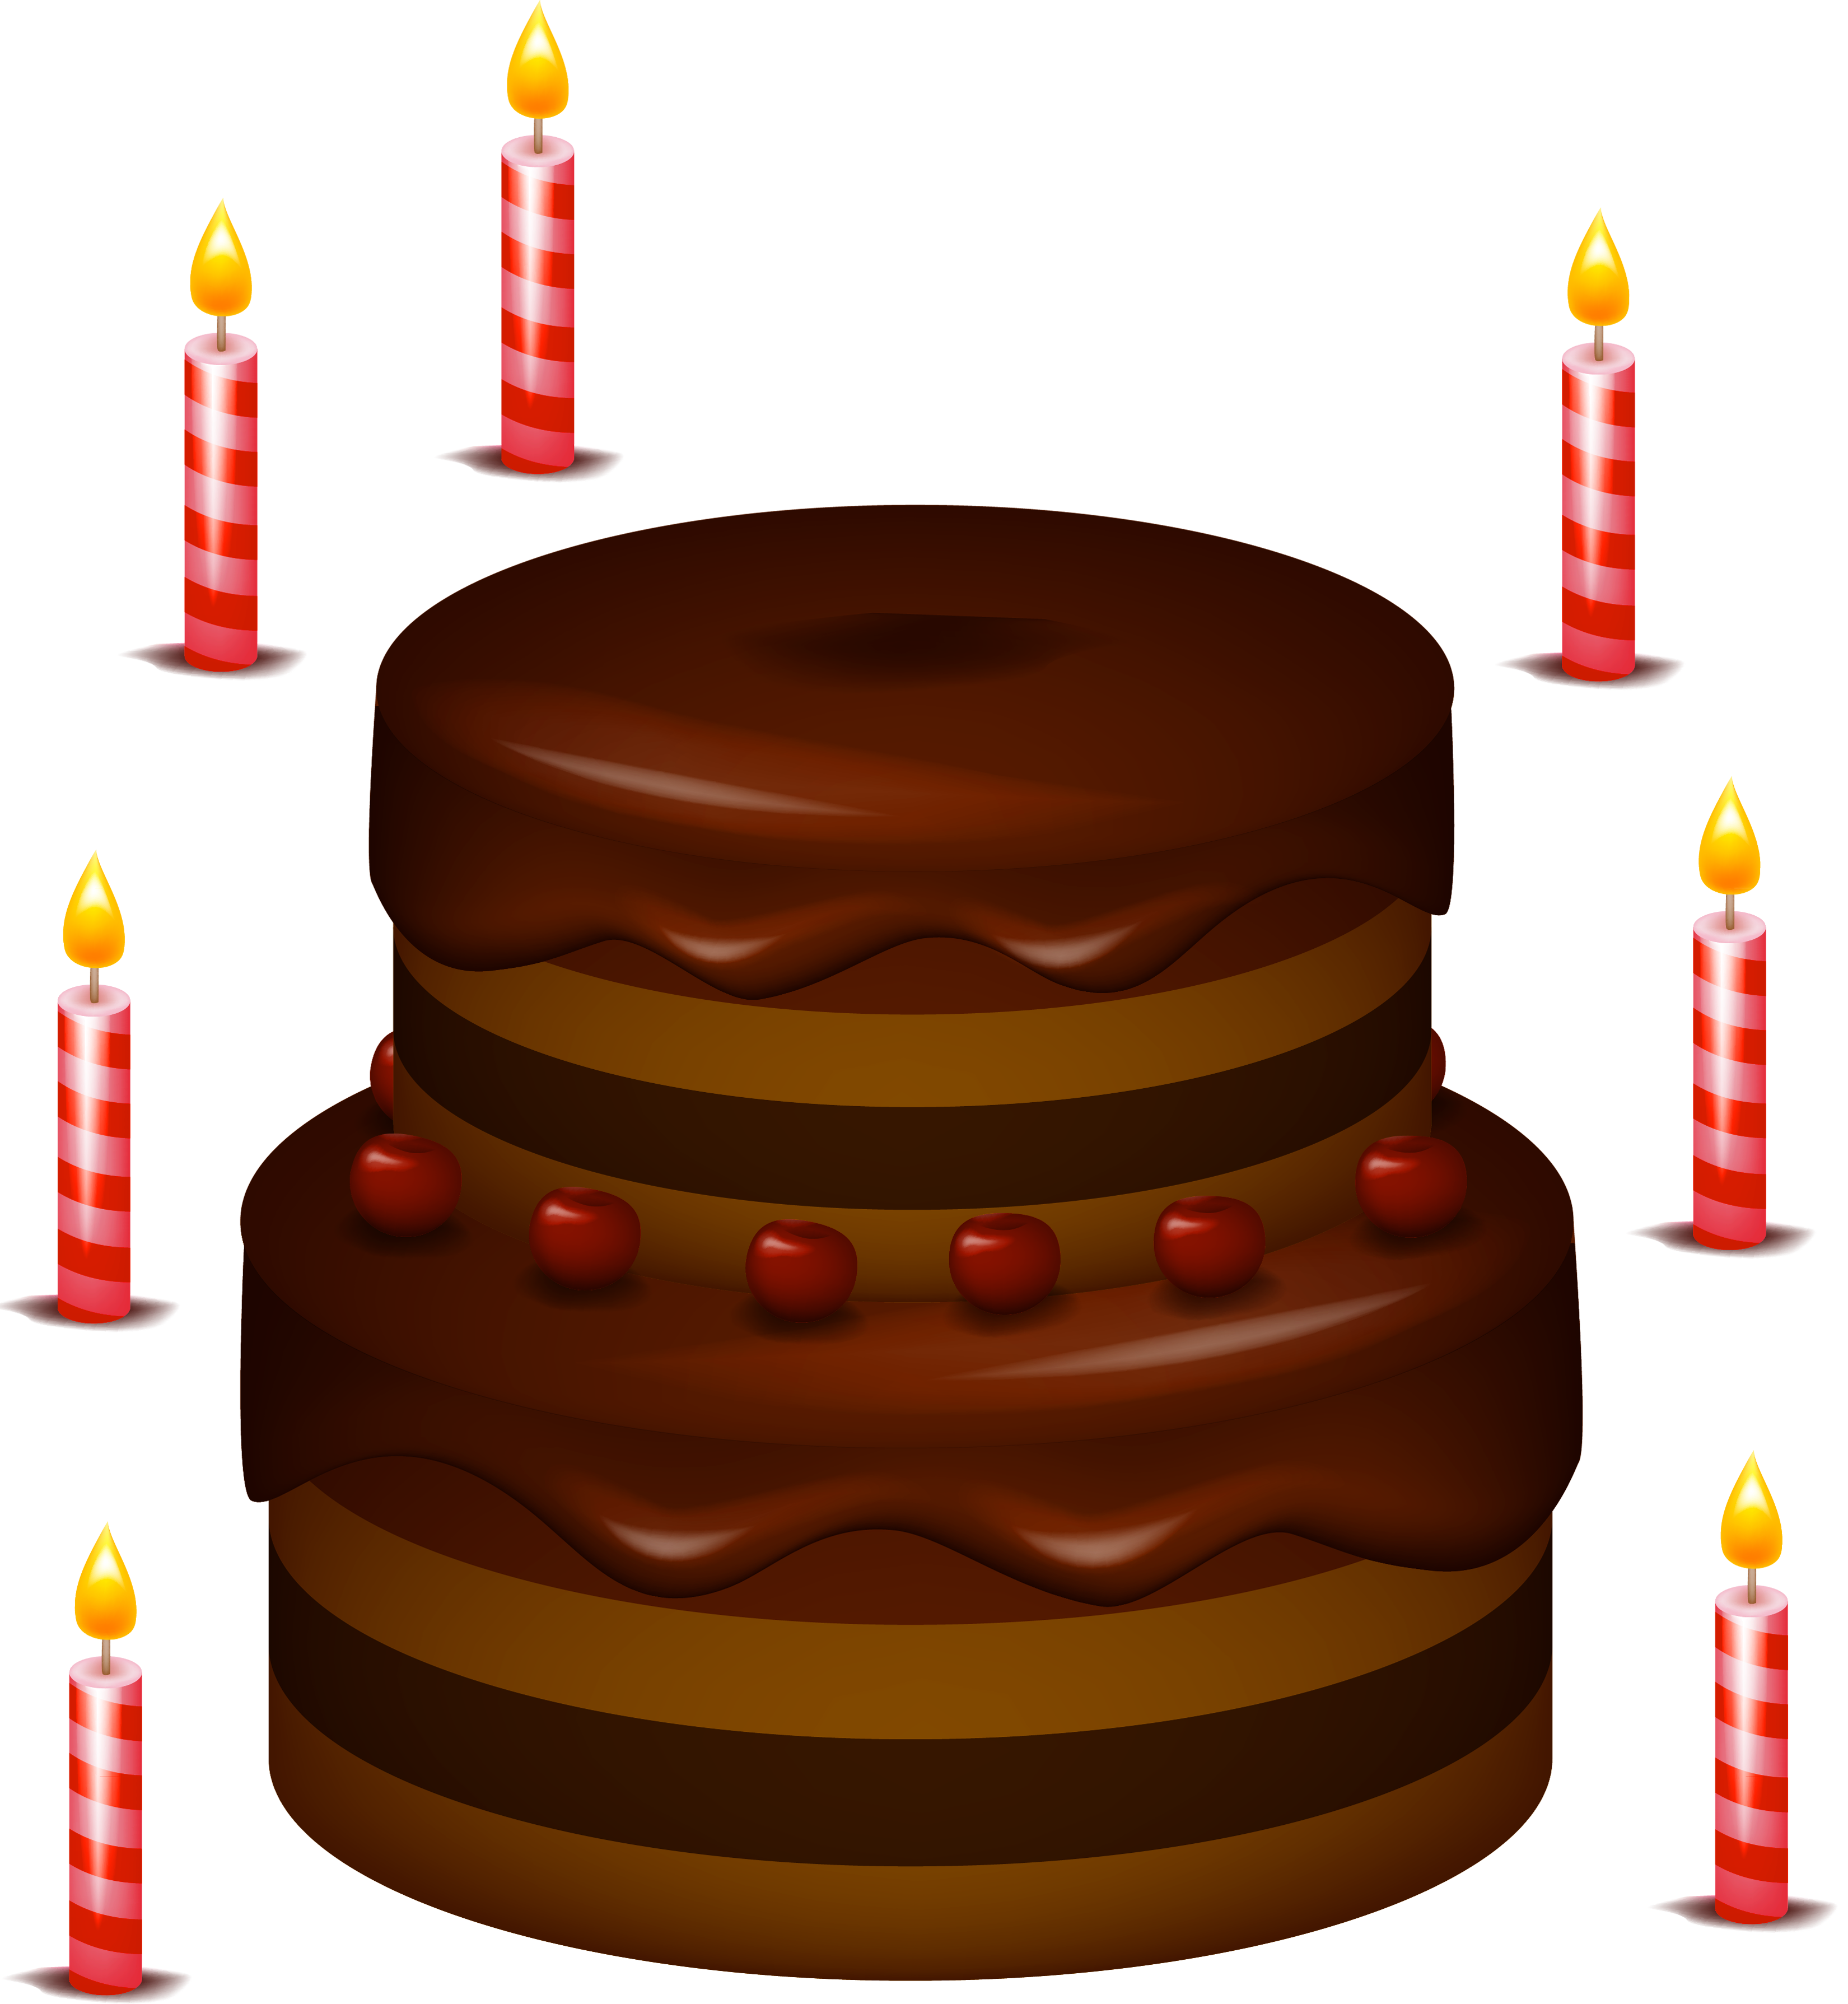 Chocolate Cake Clipart : Chocolate Cake With Candles PNG Clipart - Cliparts.co